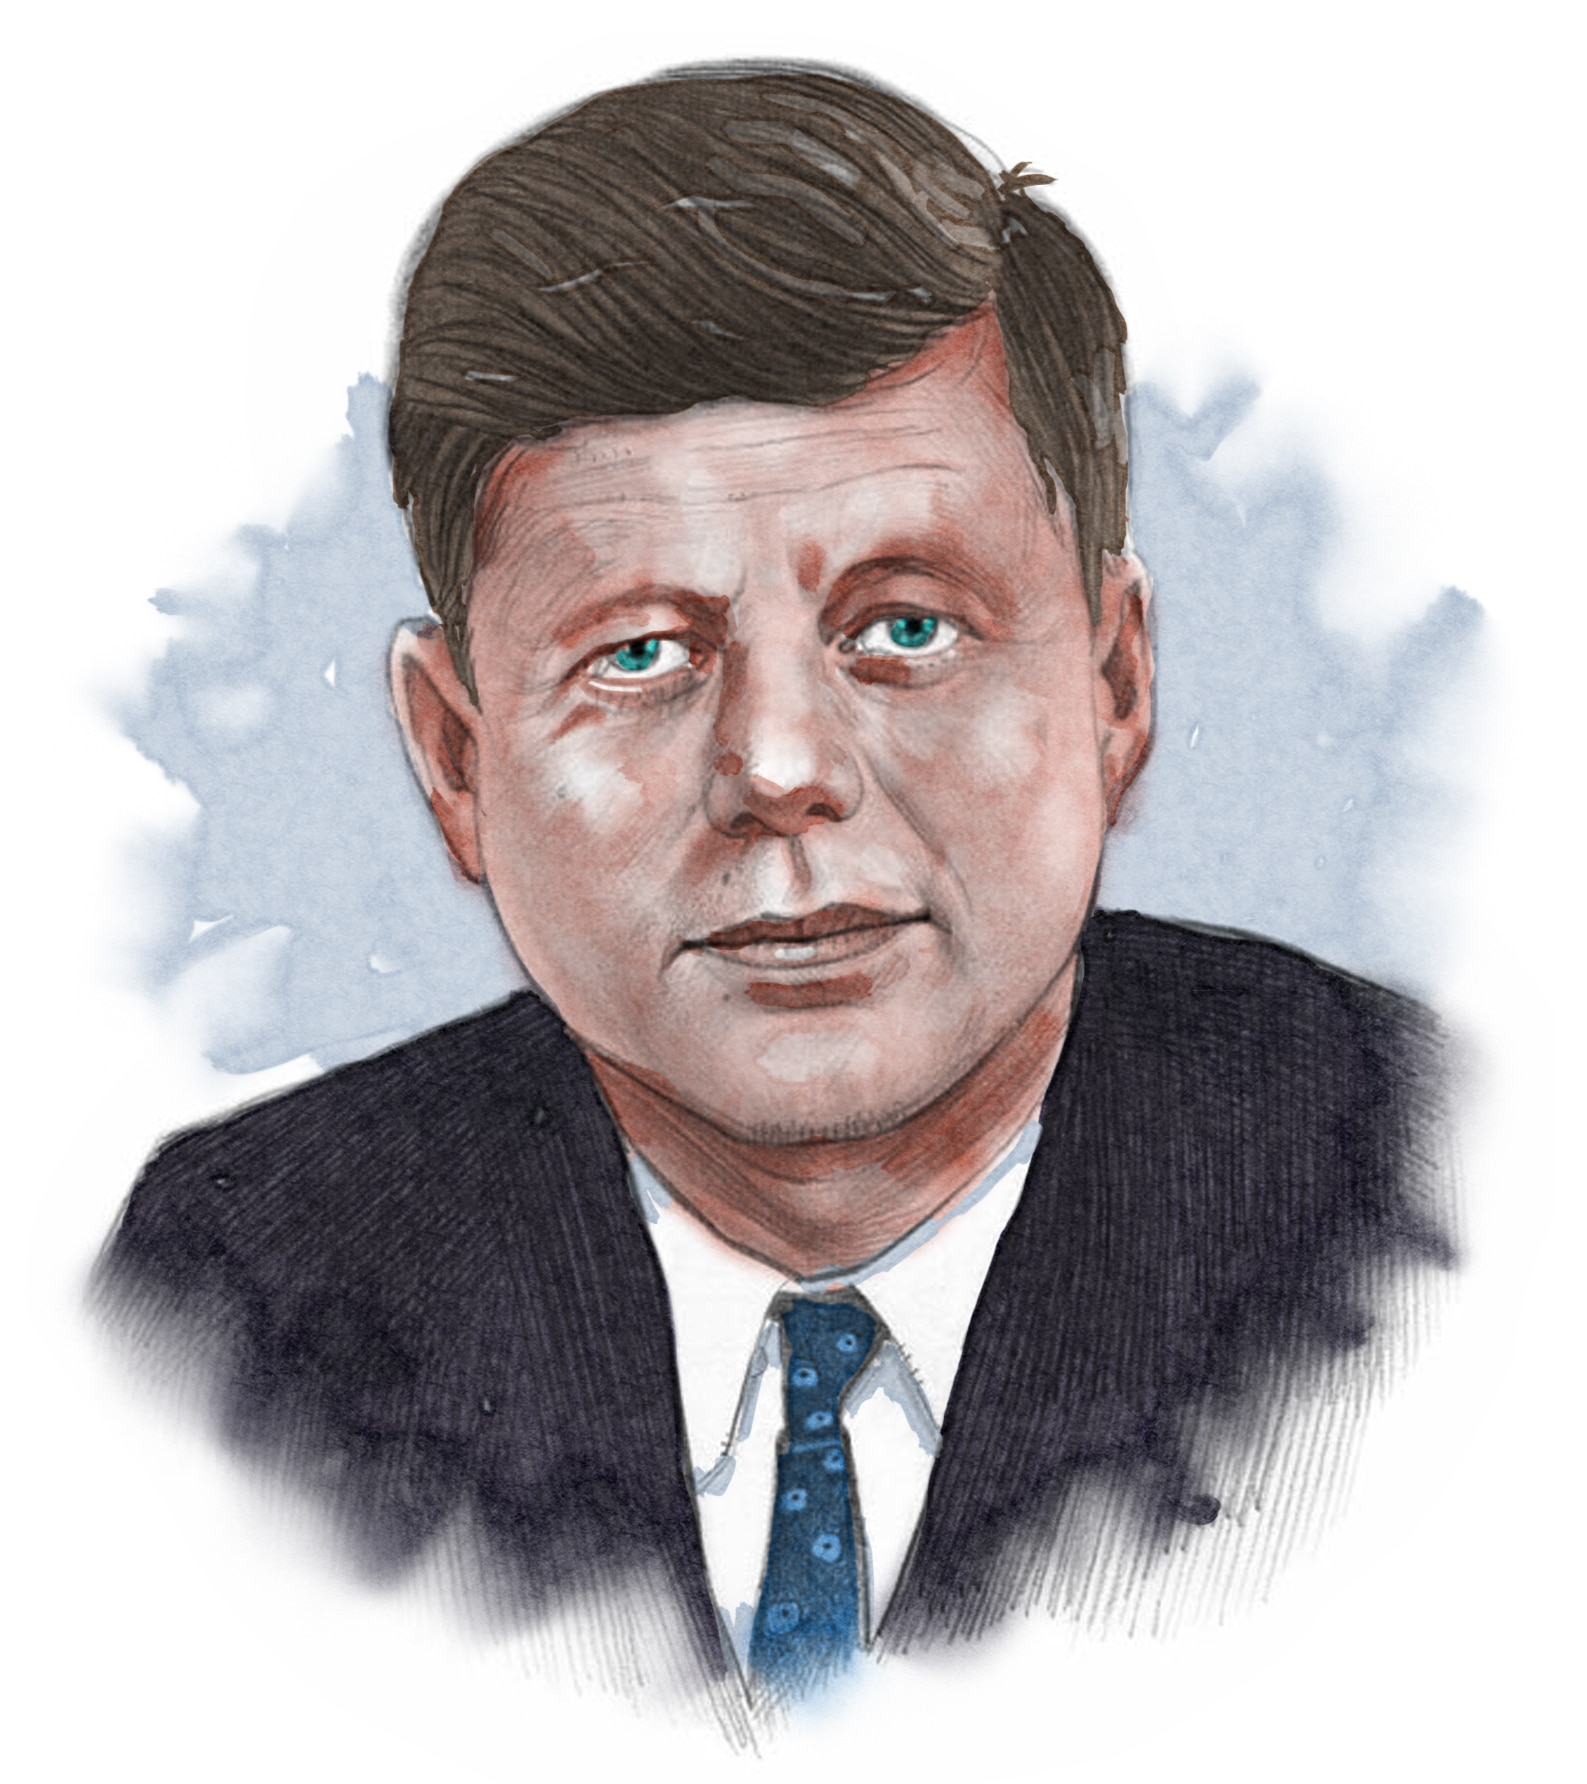 Illustrated image of President Kennedy (© siteseen.info)